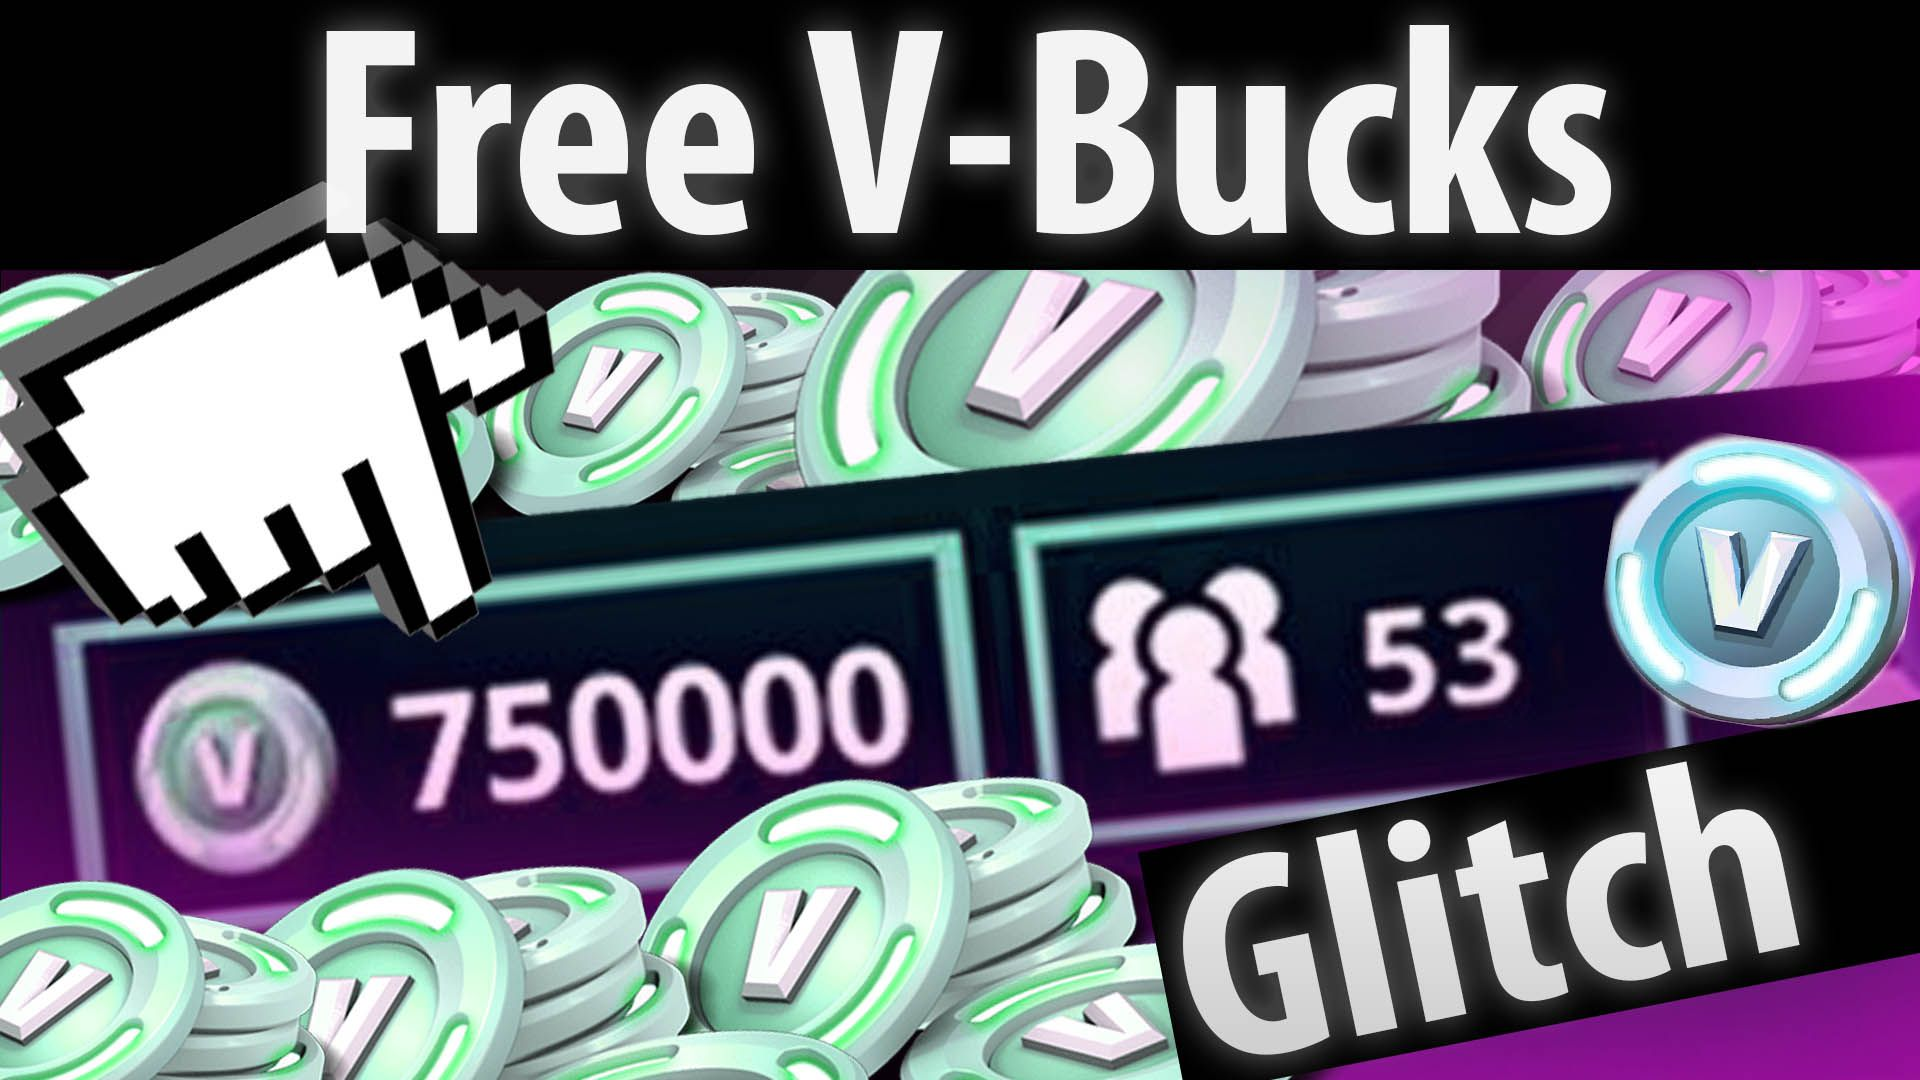 26+ How To Get Free V-Bucks On Fortnite Xbox One Images